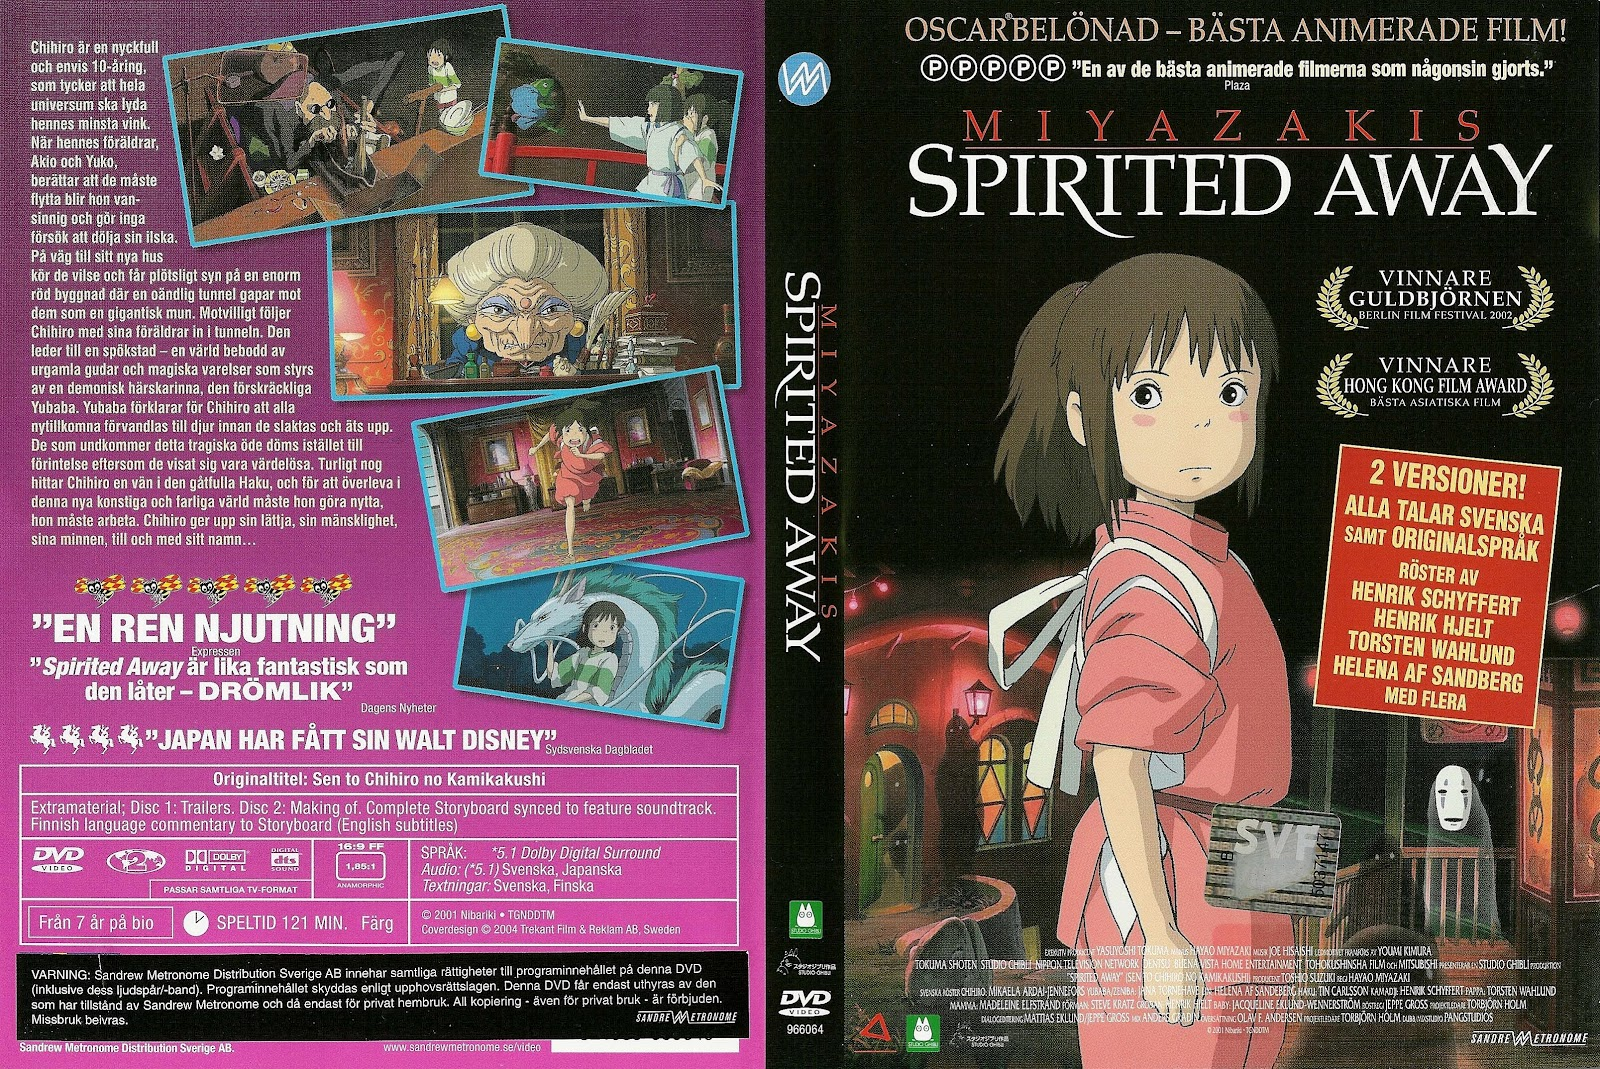 SSpirited-Away-Dvd-Cover